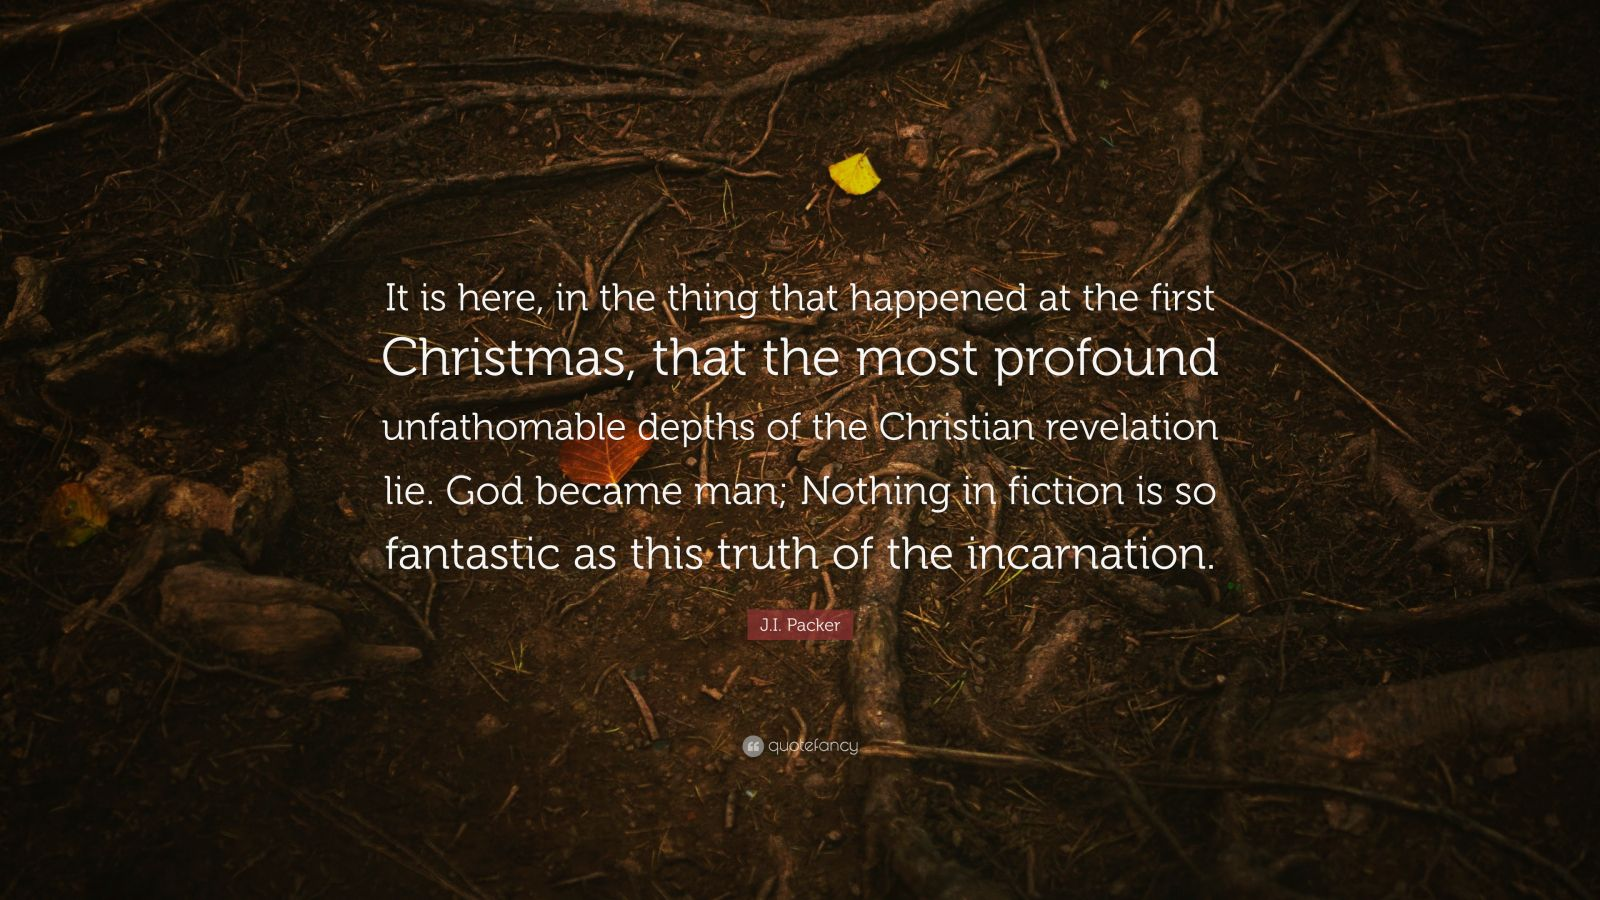 "J.I. Packer Quote: ""It is here, in the thing that happened at the first Christmas, that the most profound unfathomable depths of the Christian revelation lie. God became man; Nothing in fiction is so fantastic as this truth of the incarnation."""